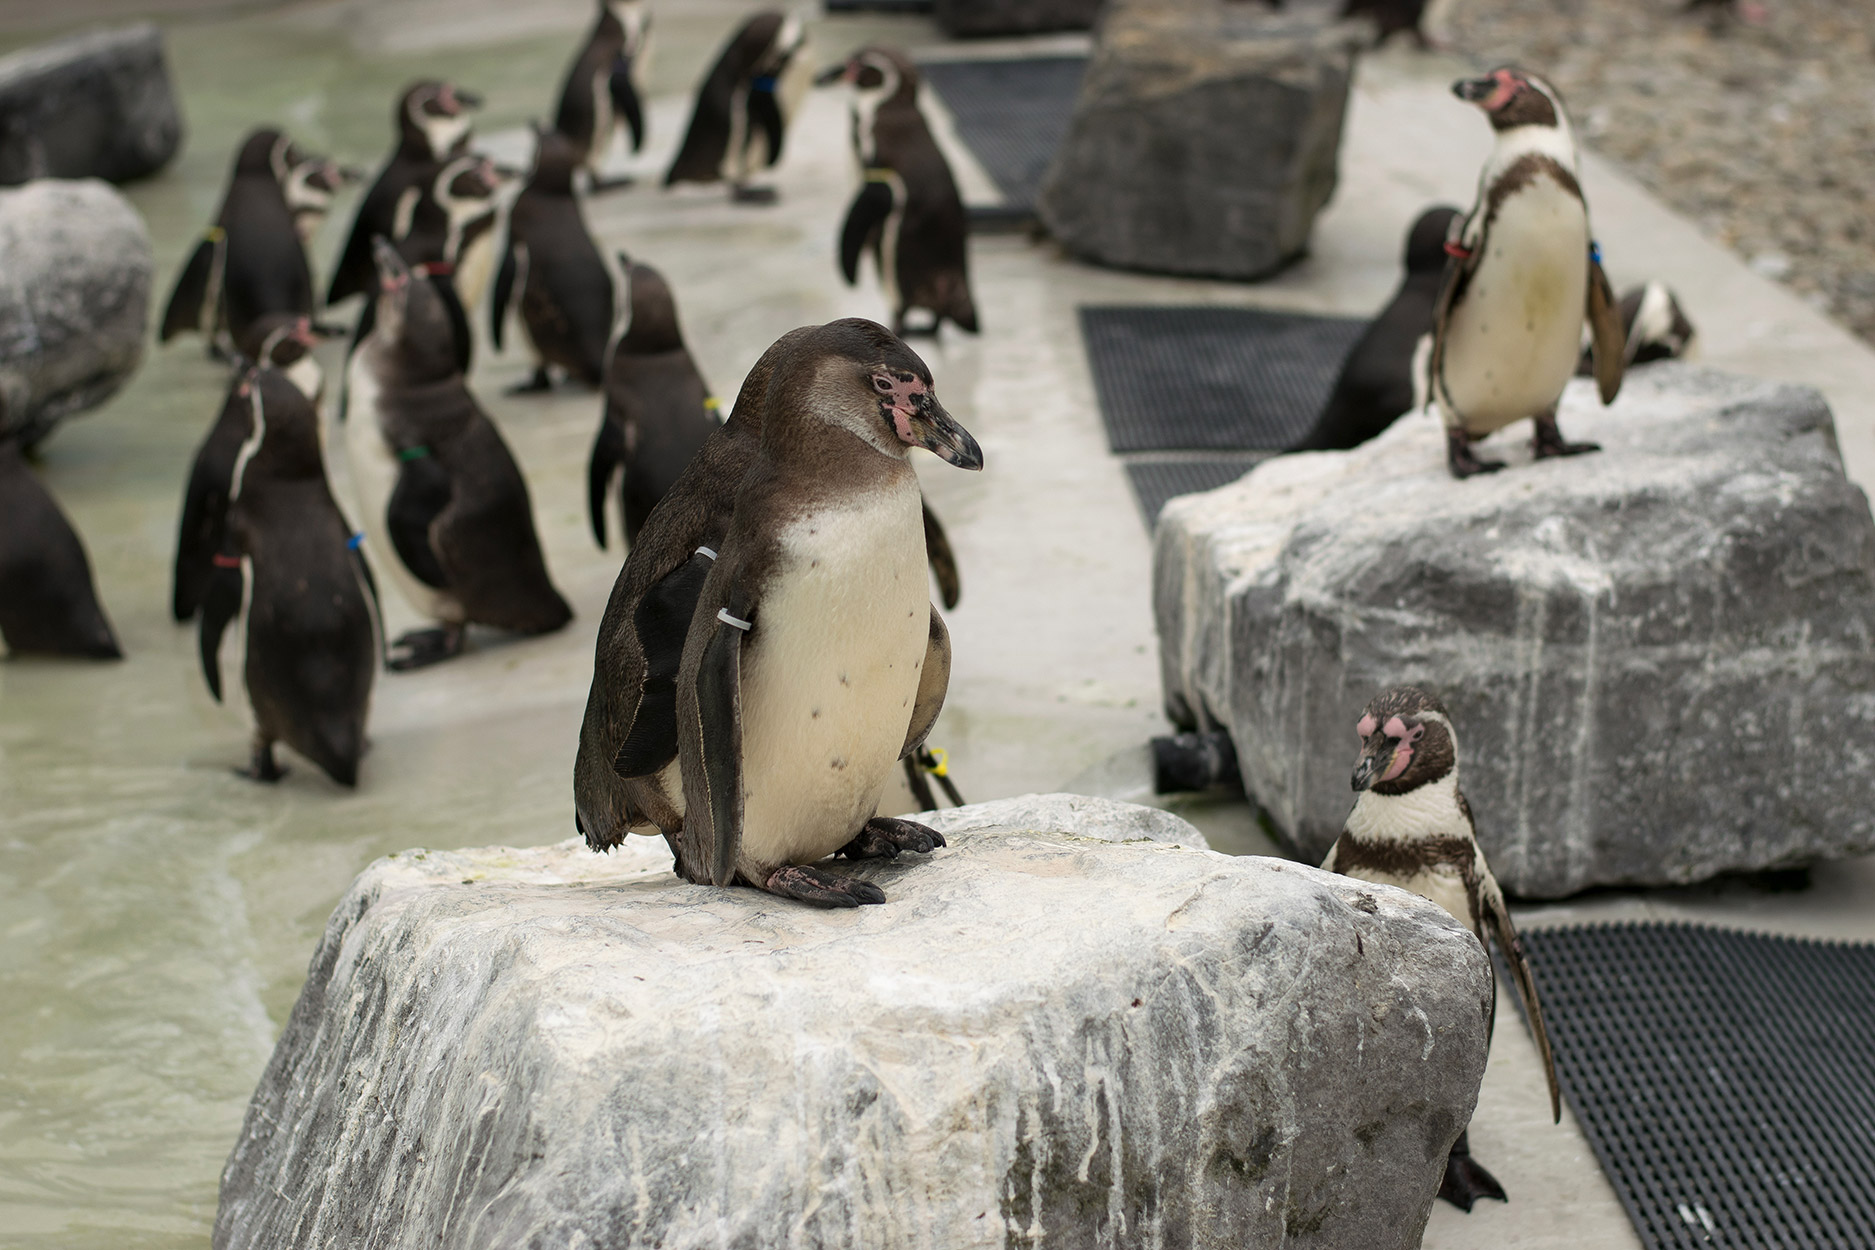 Visiting the penguins at Folly Farm, Wales